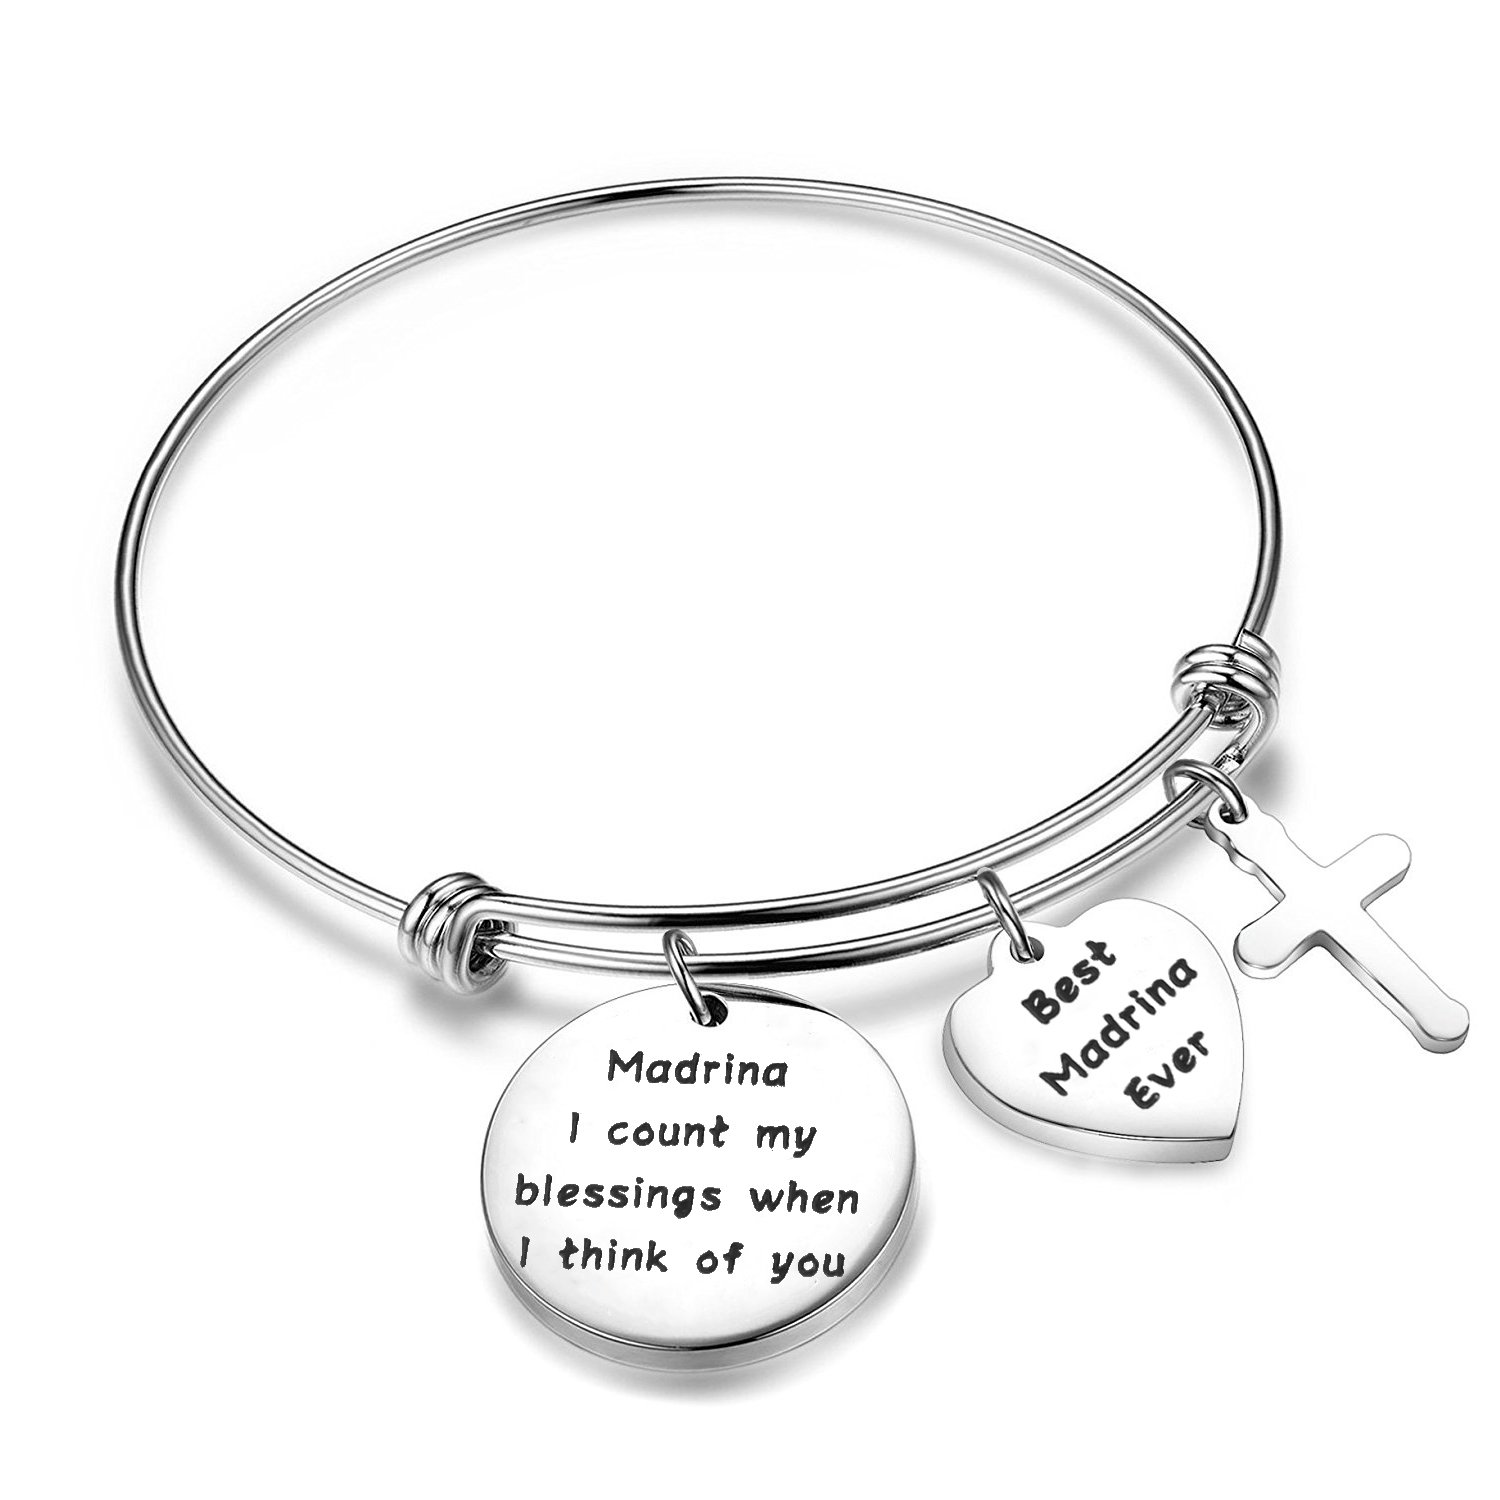 Madrina Bracelet I Count My Blessing When I Think of You Godmother Gift BNQL